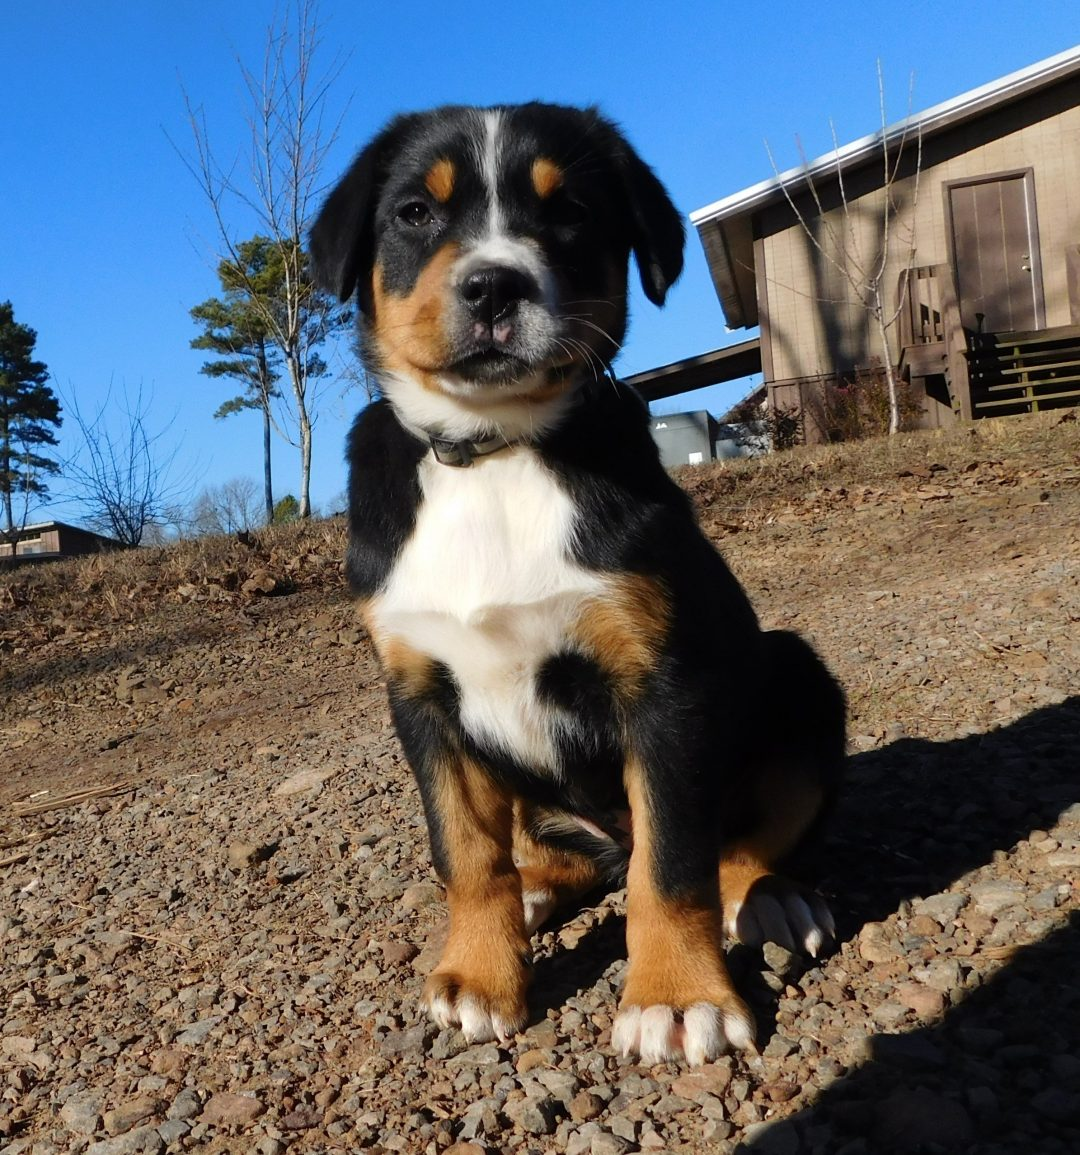 Rose Akc Greater Swiss Mountain Puppy For Sale In Clinton Arkansas